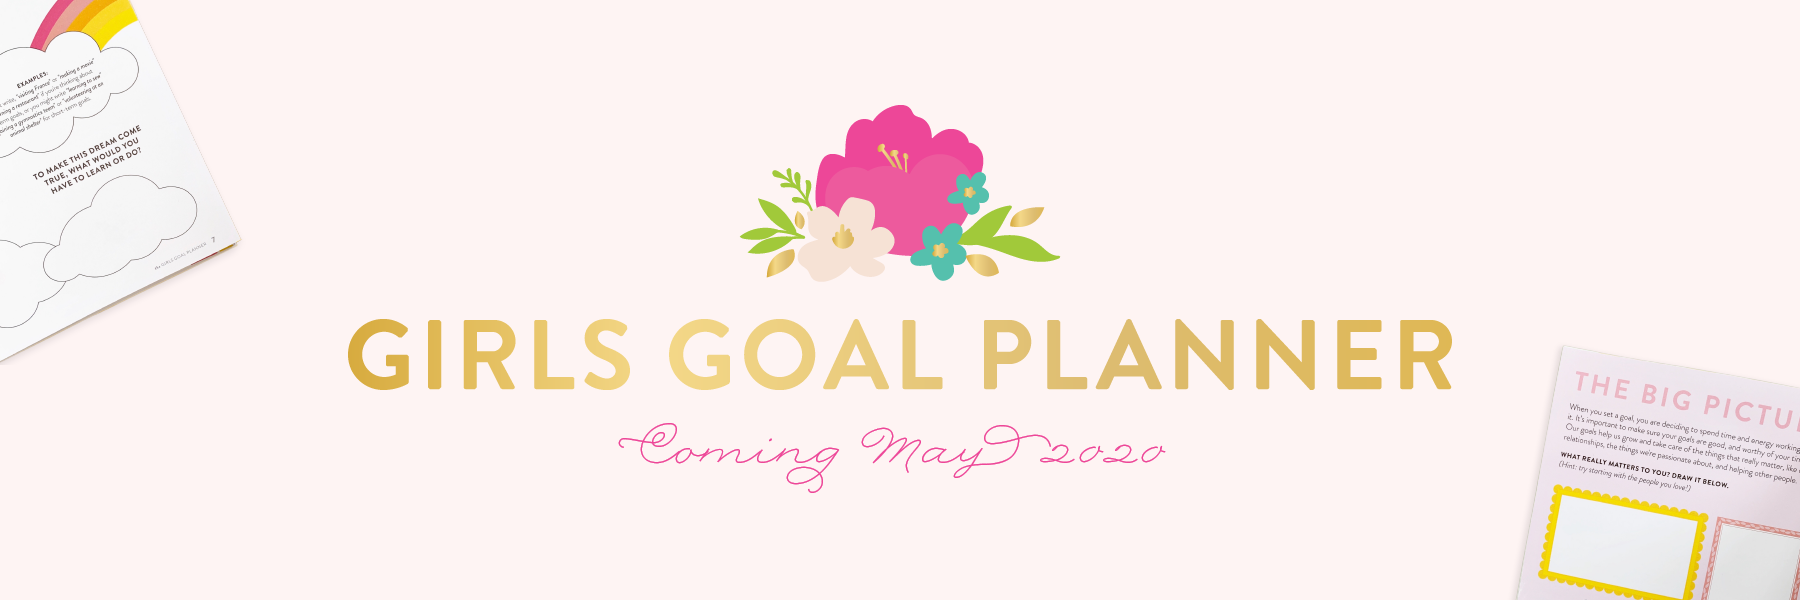 Girls Goal Planner by Cultivate What Matters | Goal Planner for Girls | PowerSheets Goal Planner